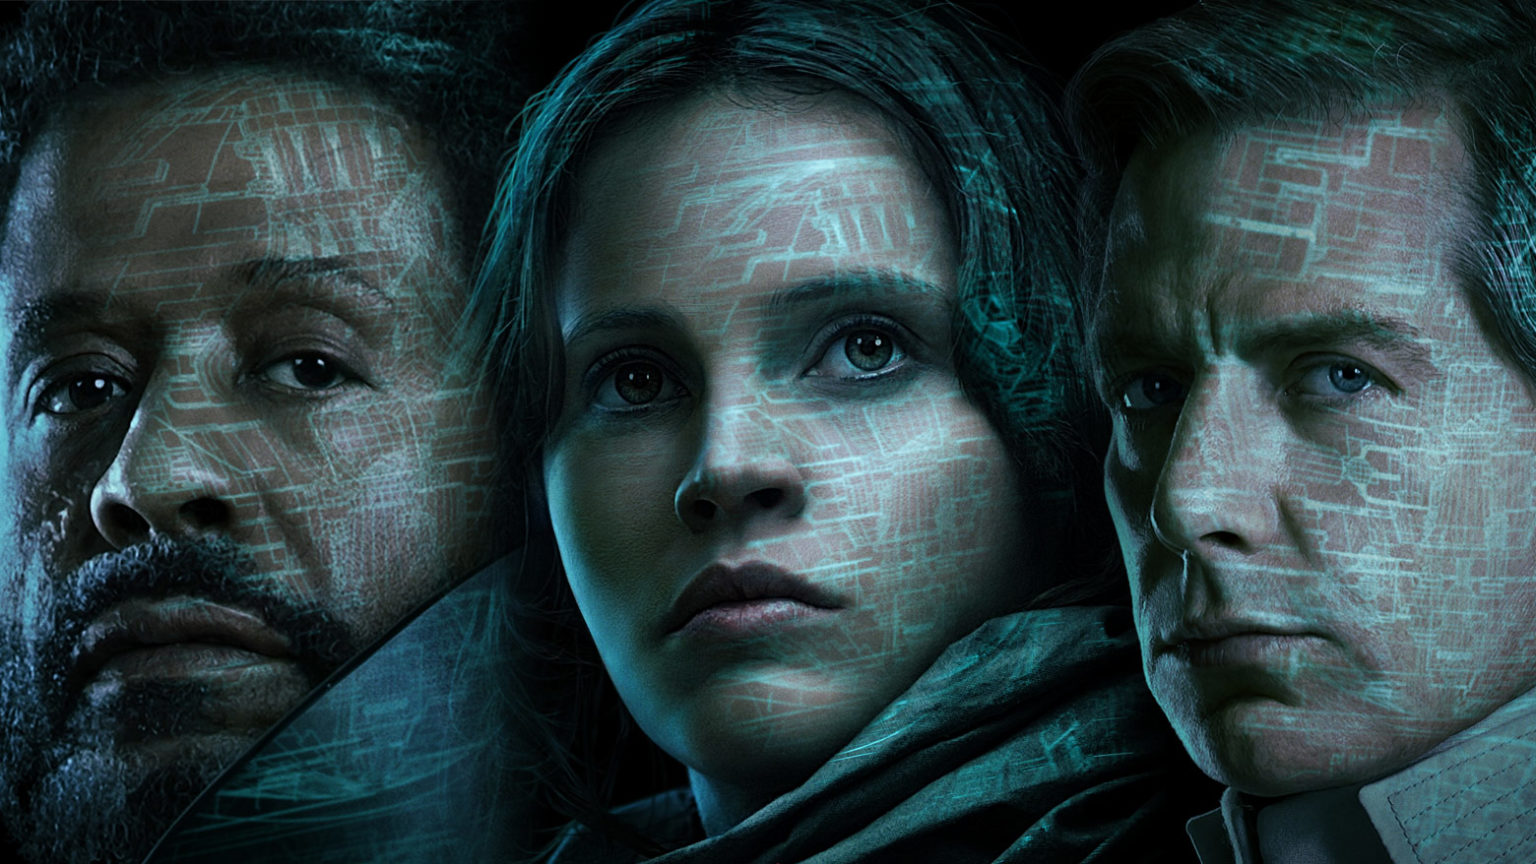 'Rogue One' Originally Had a Very Different Ending